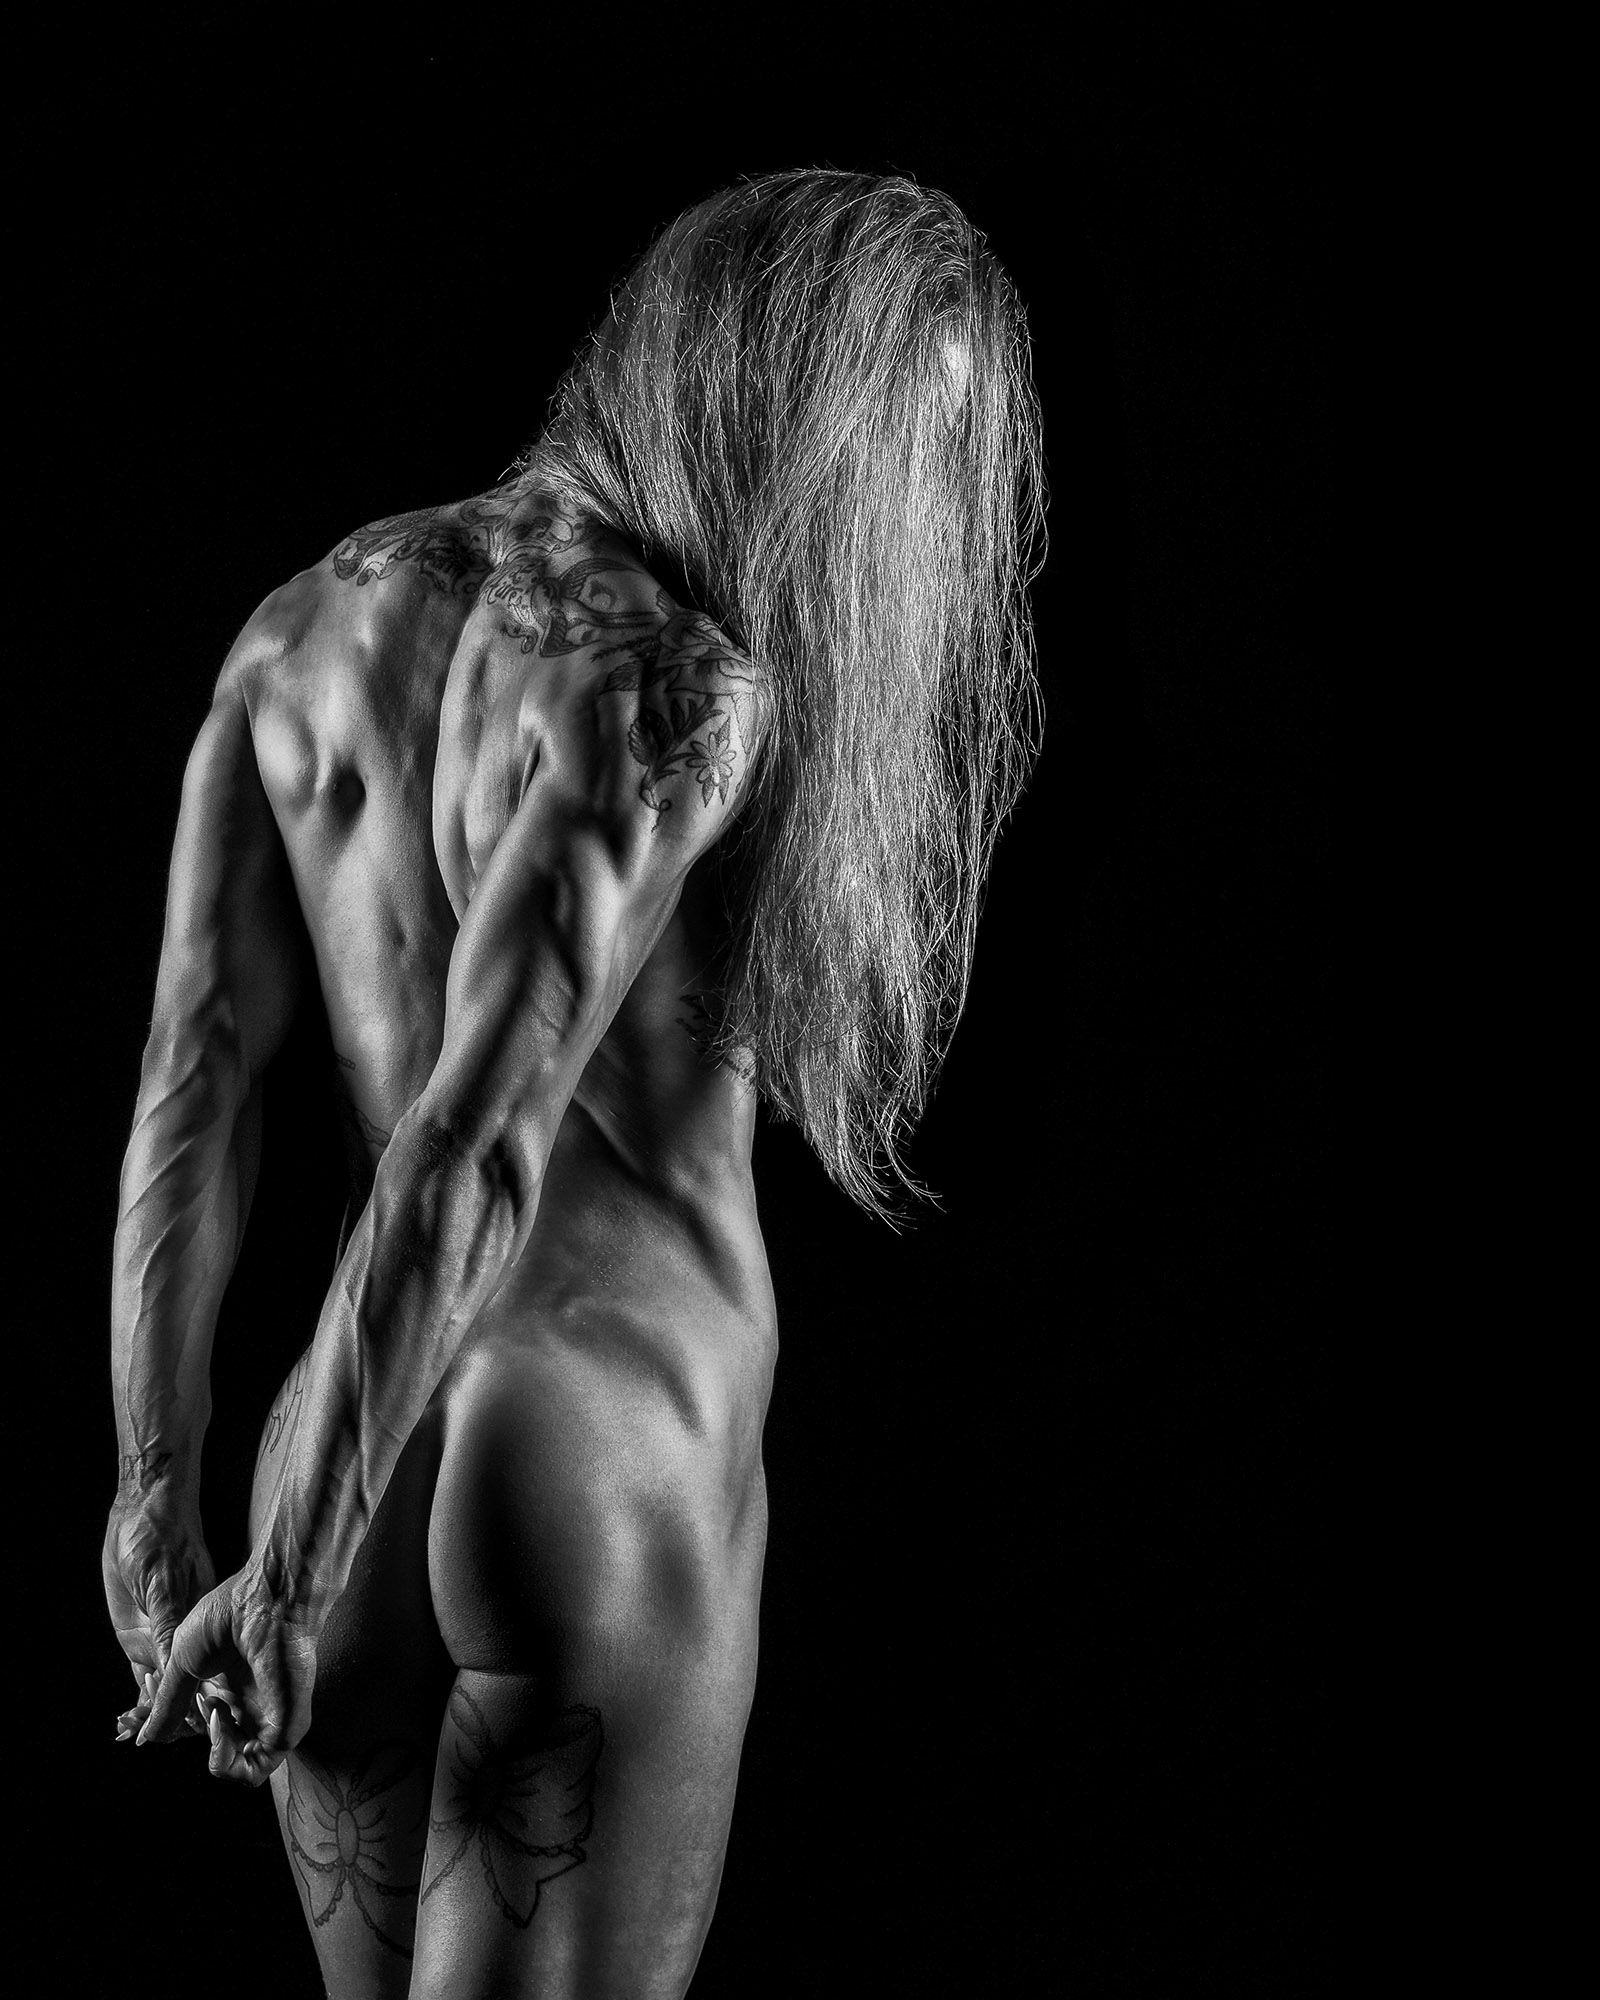 Showing off back, triceps and glutes